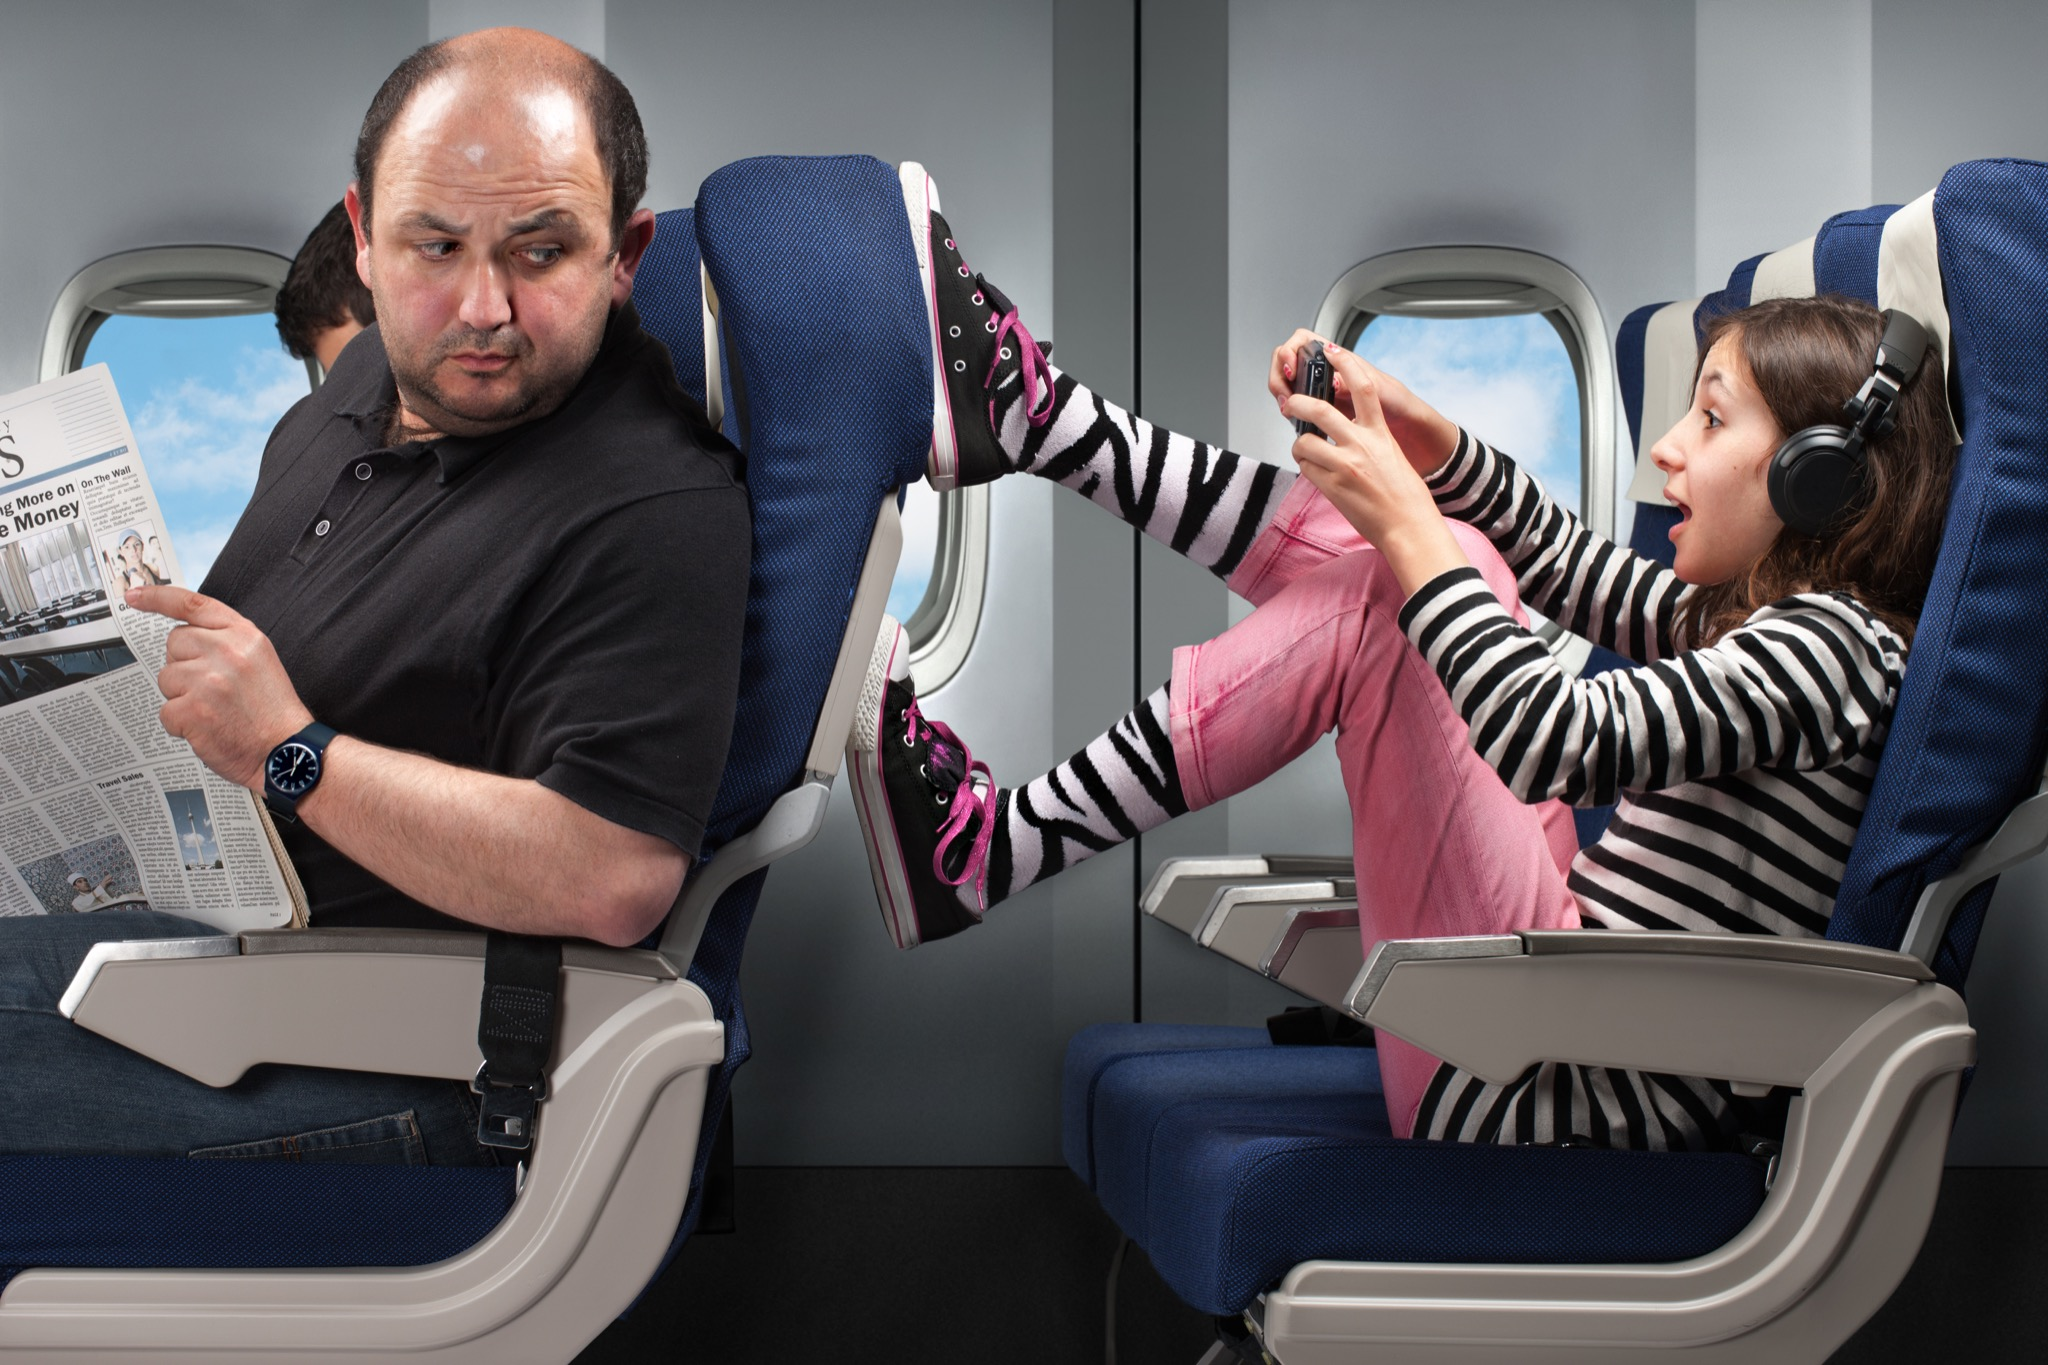 Battle over reclined plane seat leads to video shaming